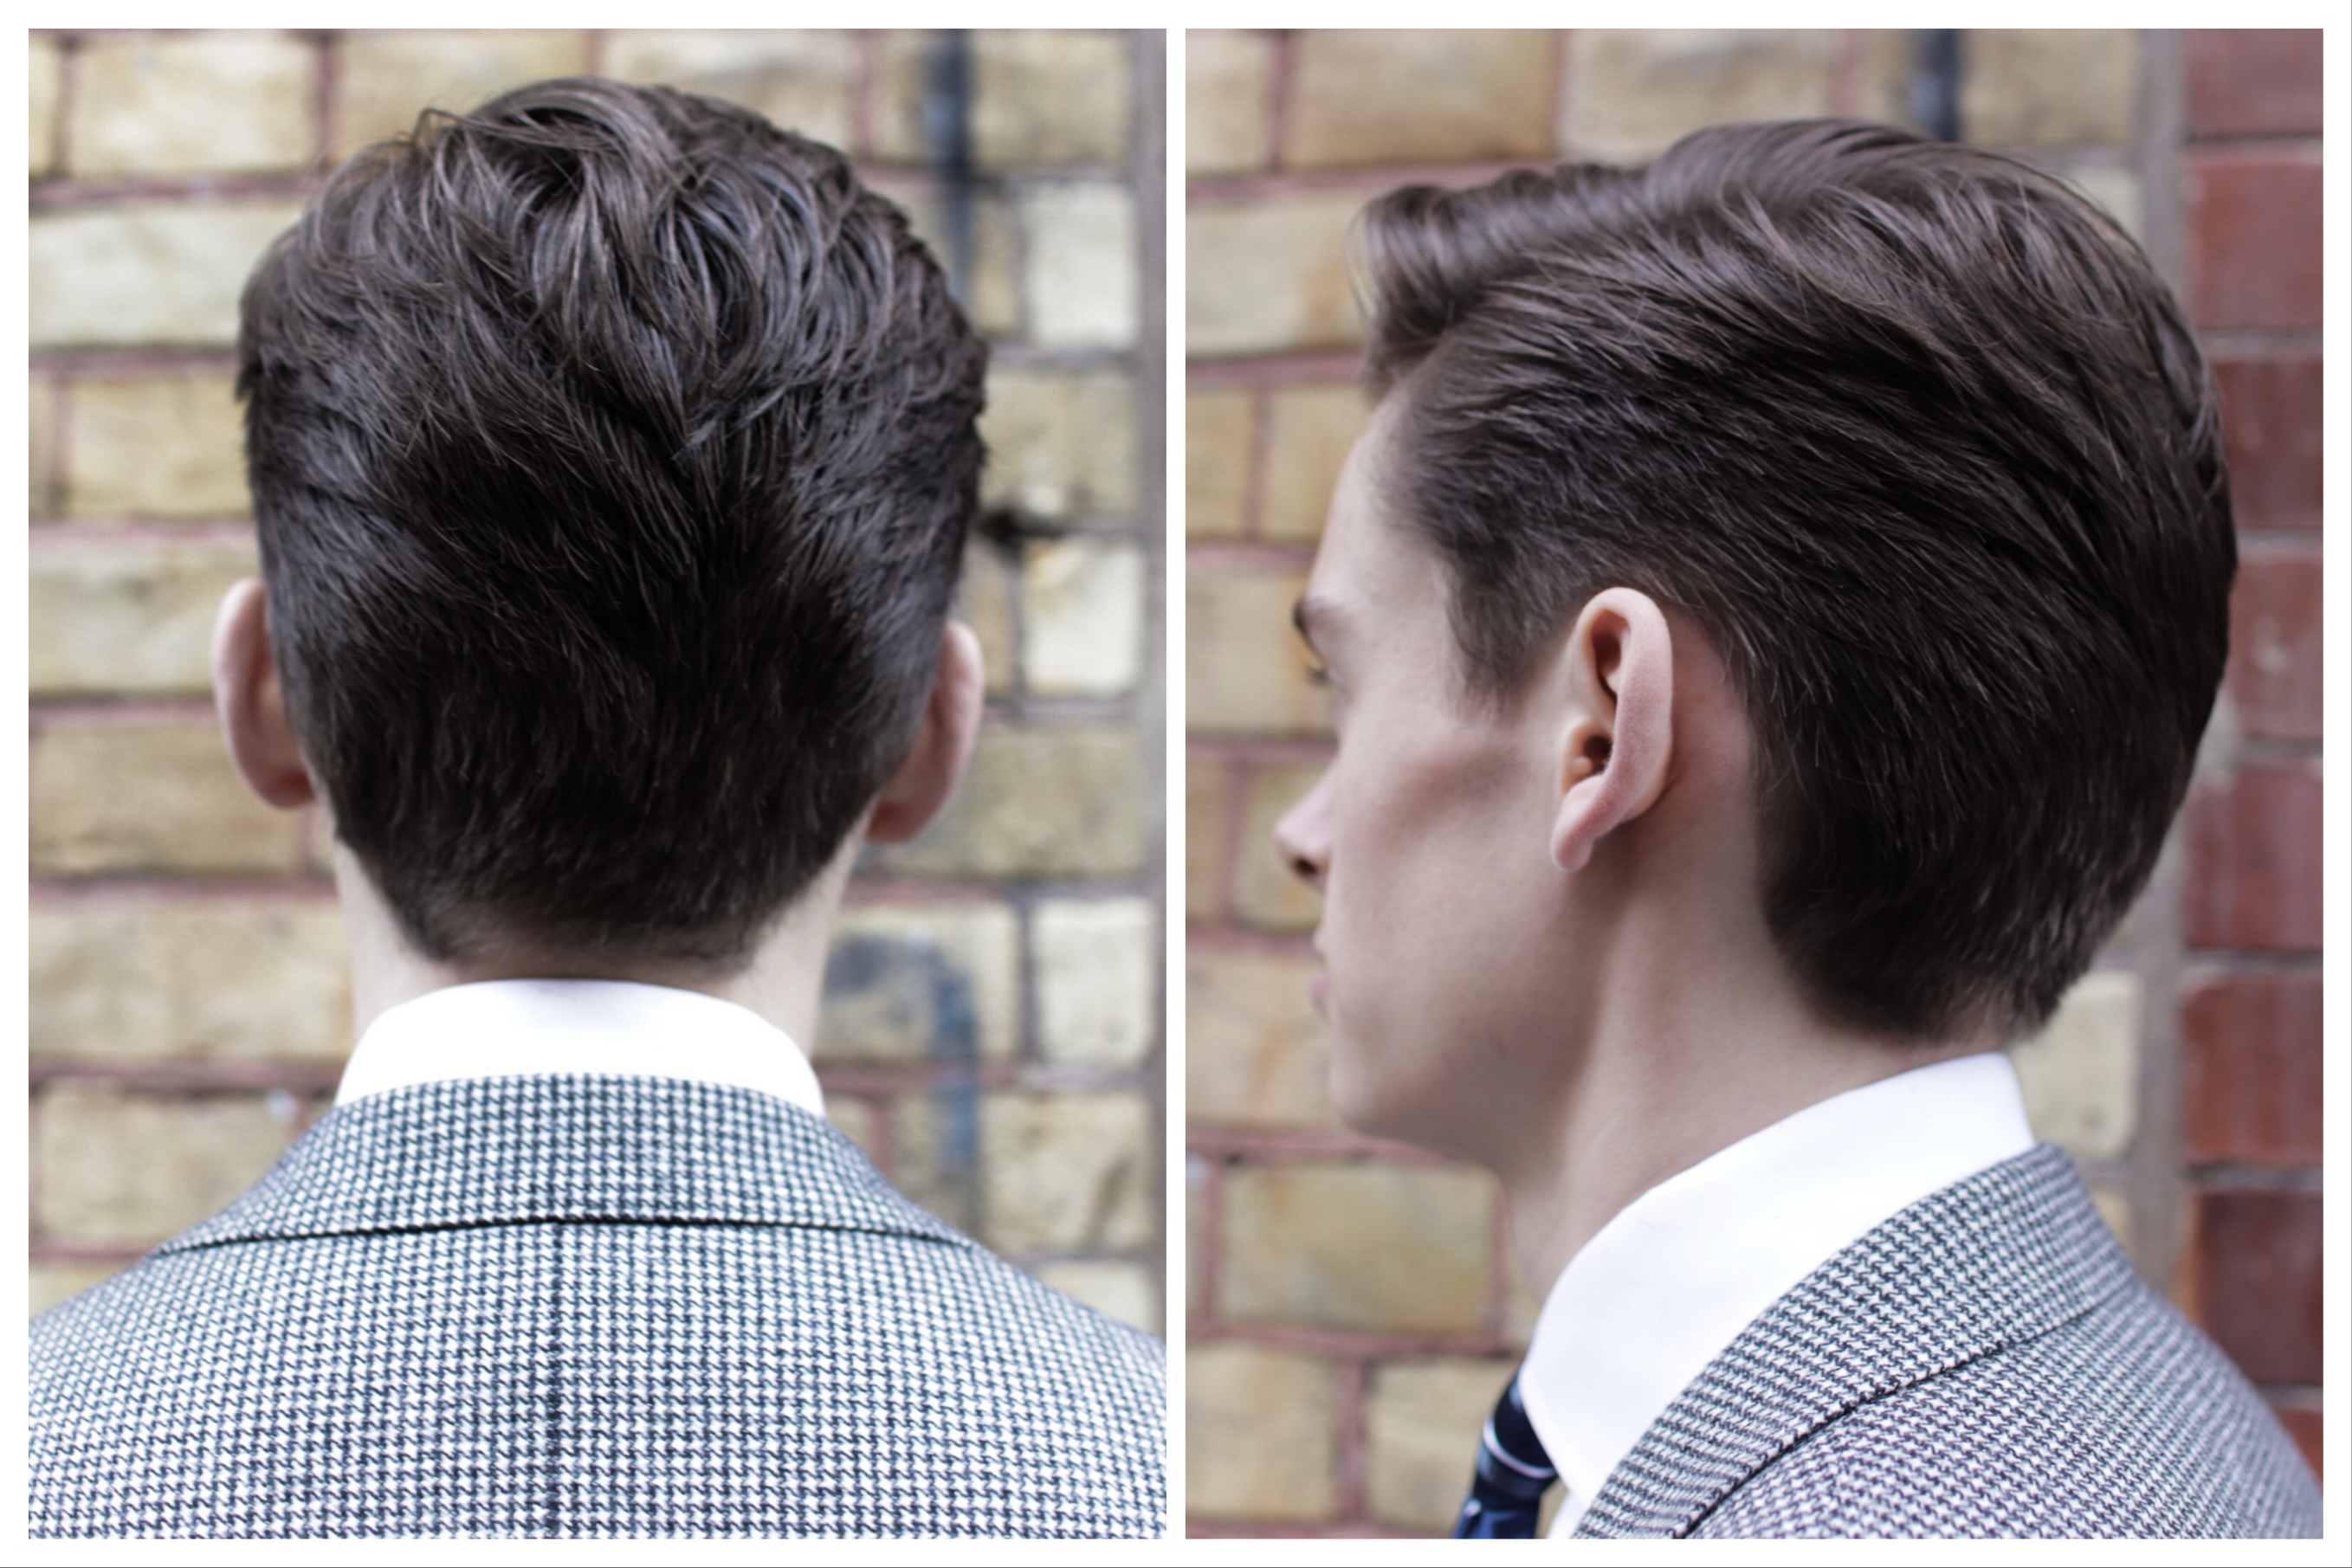 london barber ruffians model gentleman blogger style classic haircut dapper